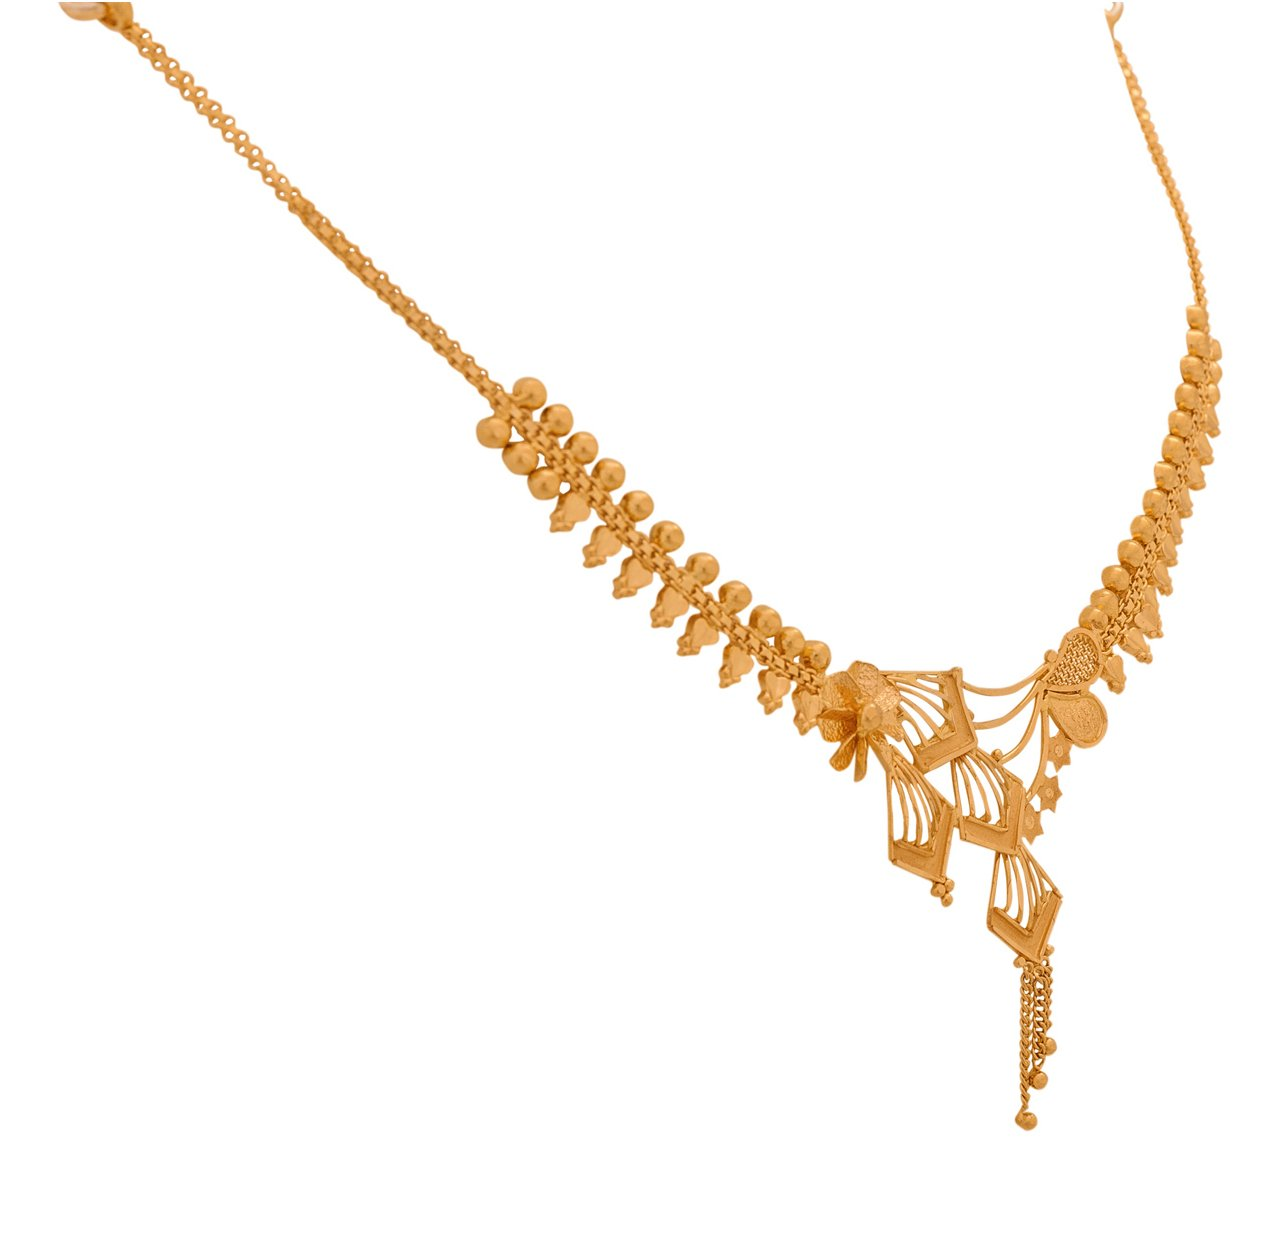 Senco Gold 22k Yellow Gold Multi-Strand Necklace for Women